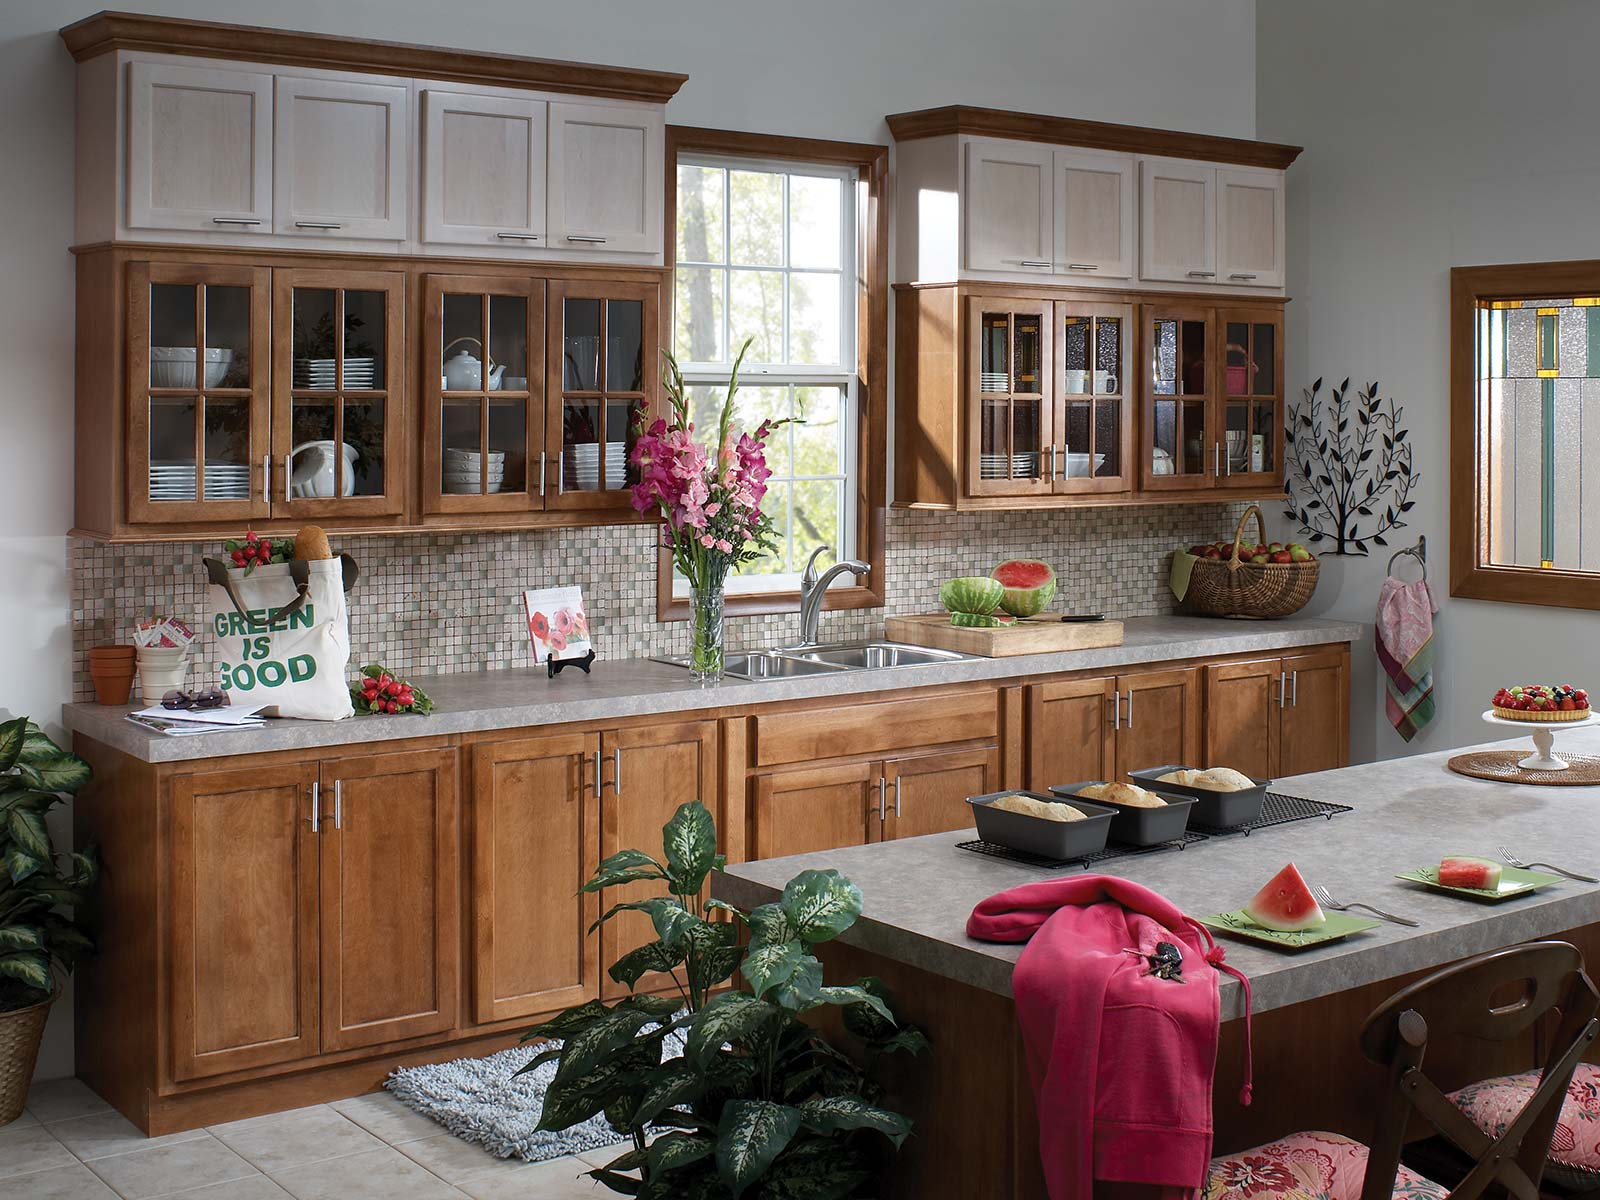 Mullion glass kitchen cabinets